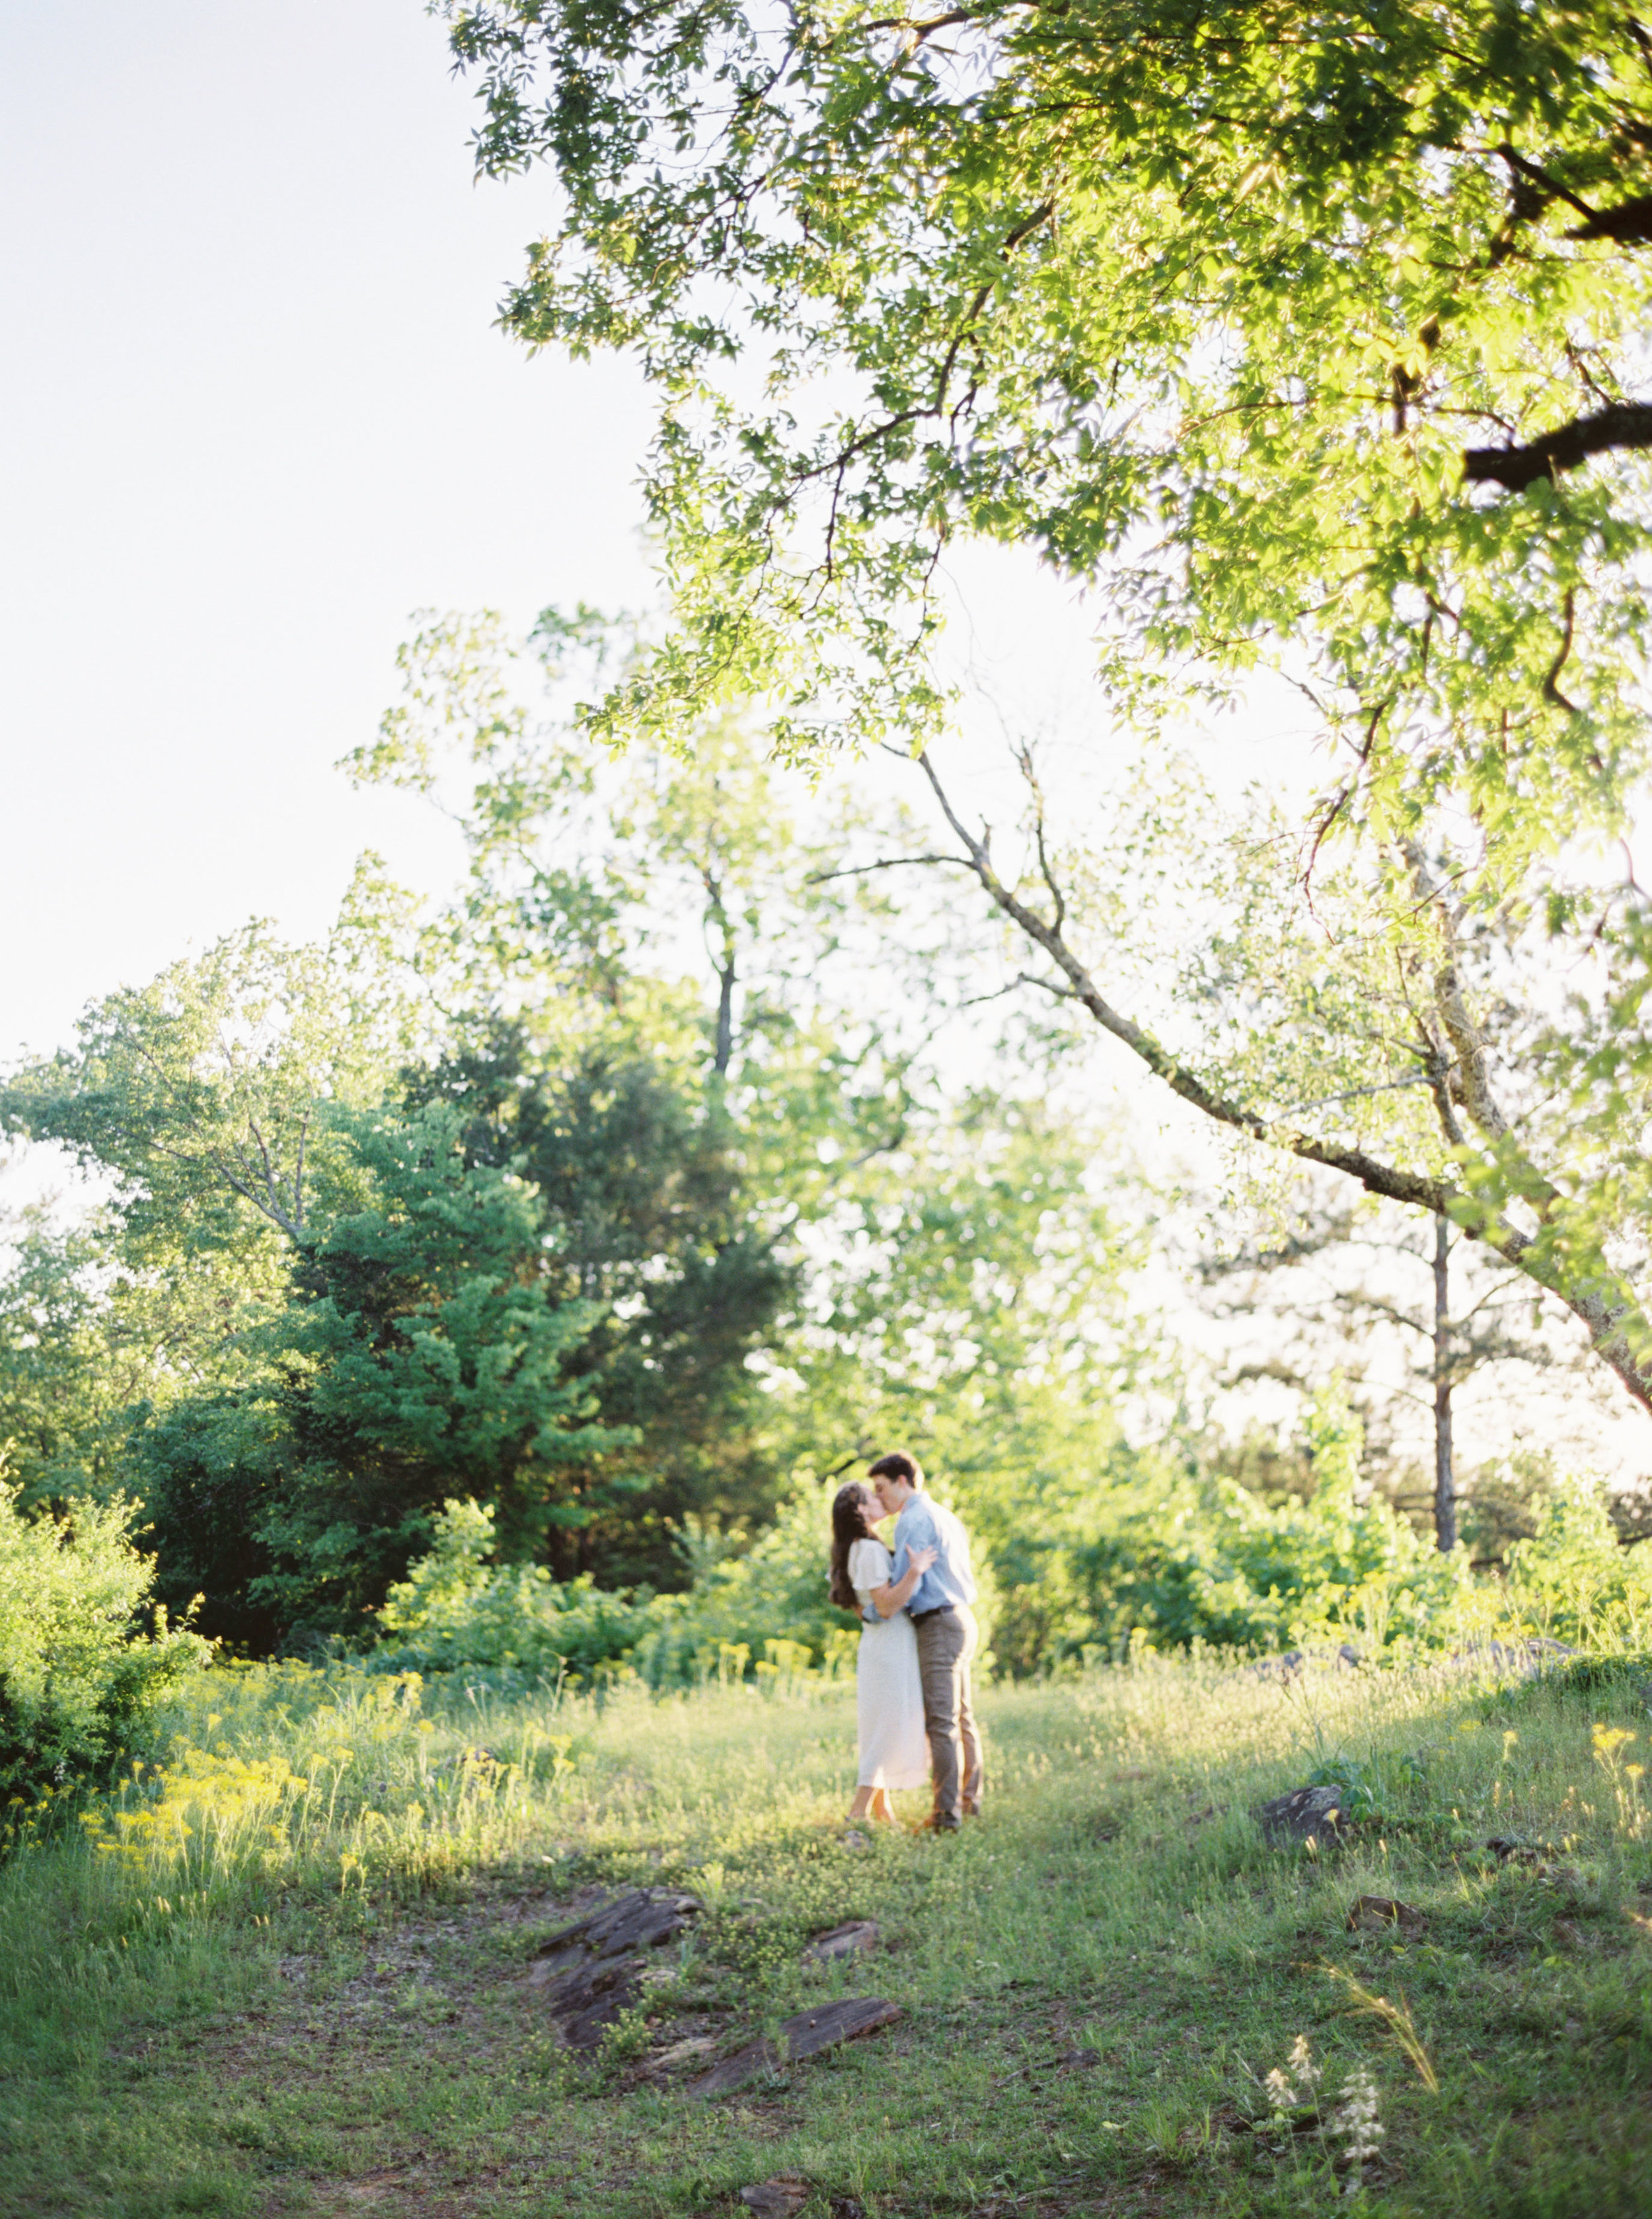 Oak Mountain State Park, Peavine Falls, Birmingham overlooks, Meghan Murphy Photography, Birmingham Engagement Session, Where to take engagement pictures in Birmingham, AL, Alabama wedding photographer, Alabama film wedding photographer, Birmingham film wedding photographer, Birmingham wedding photographer, Birmingham fine art wedding photographer, outfit ideas for engagement session, authentic engagement photos, romantic engagement photos, Lifestyle engagement photos, wildflowers